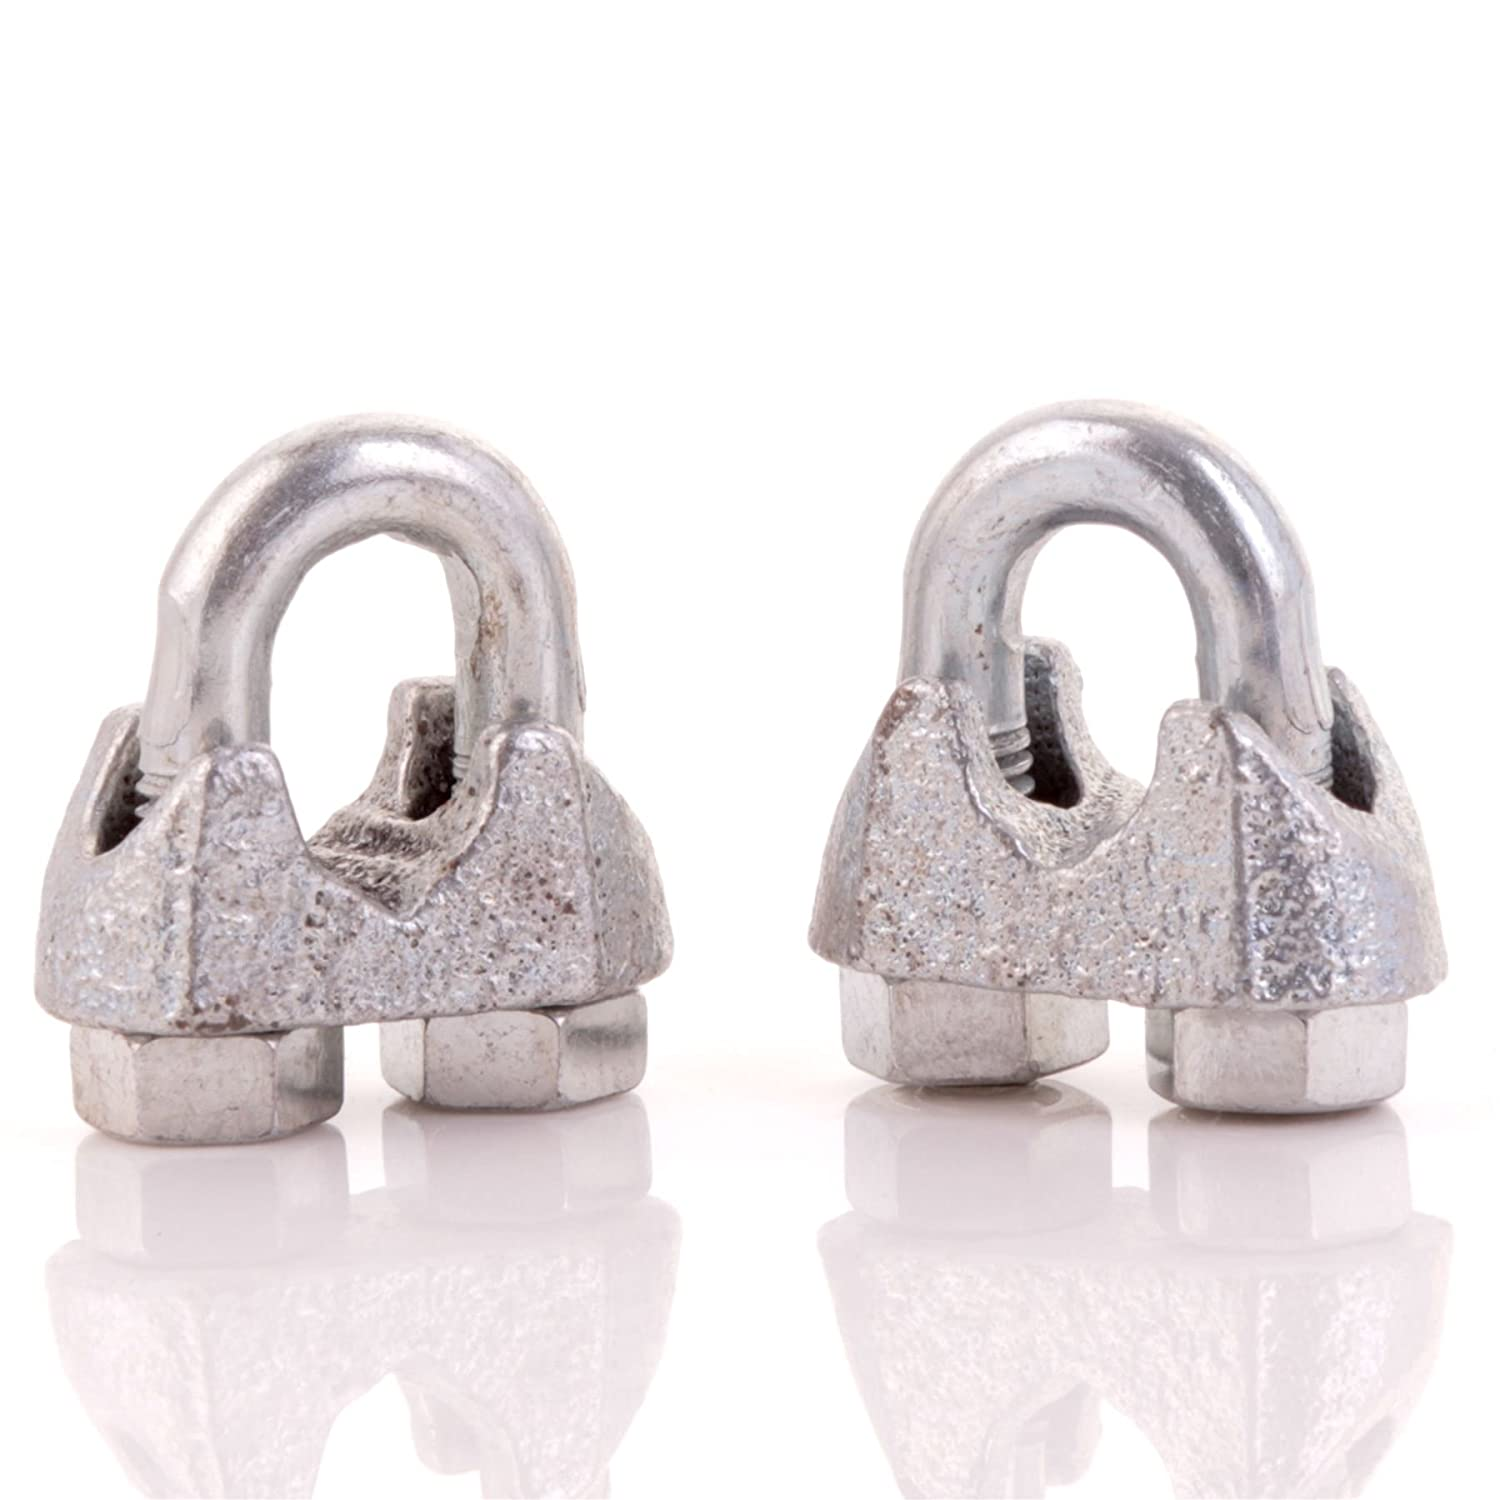 10x Heavy Duty Steel Rope Clamps I 5mm White Hinge